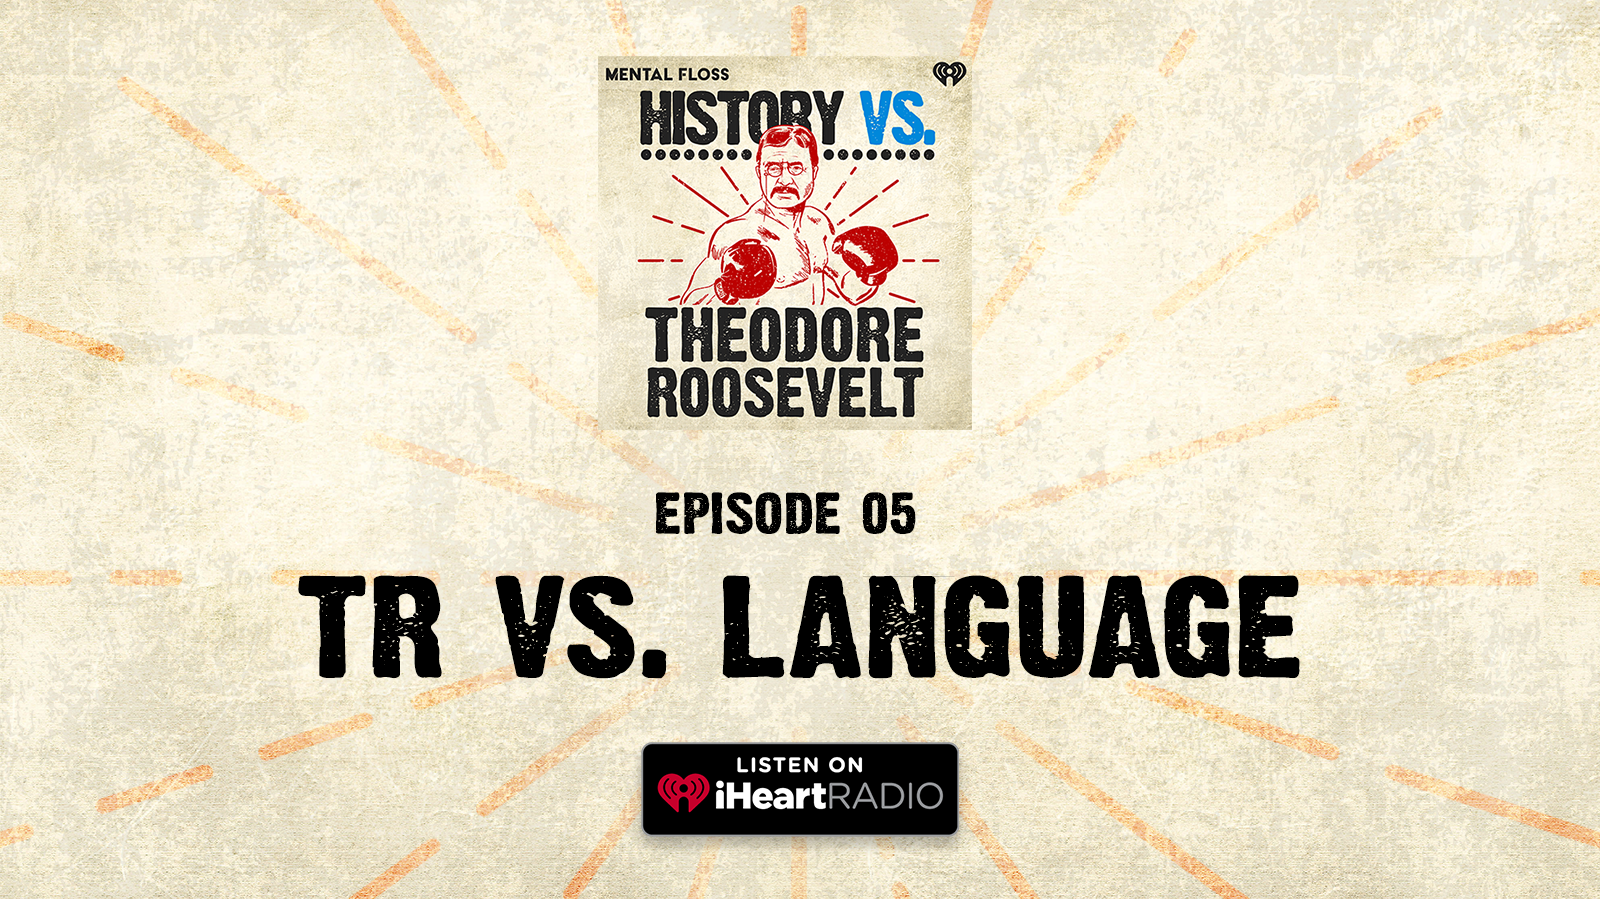 History Vs. Episode 5: Theodore Roosevelt Vs. Language